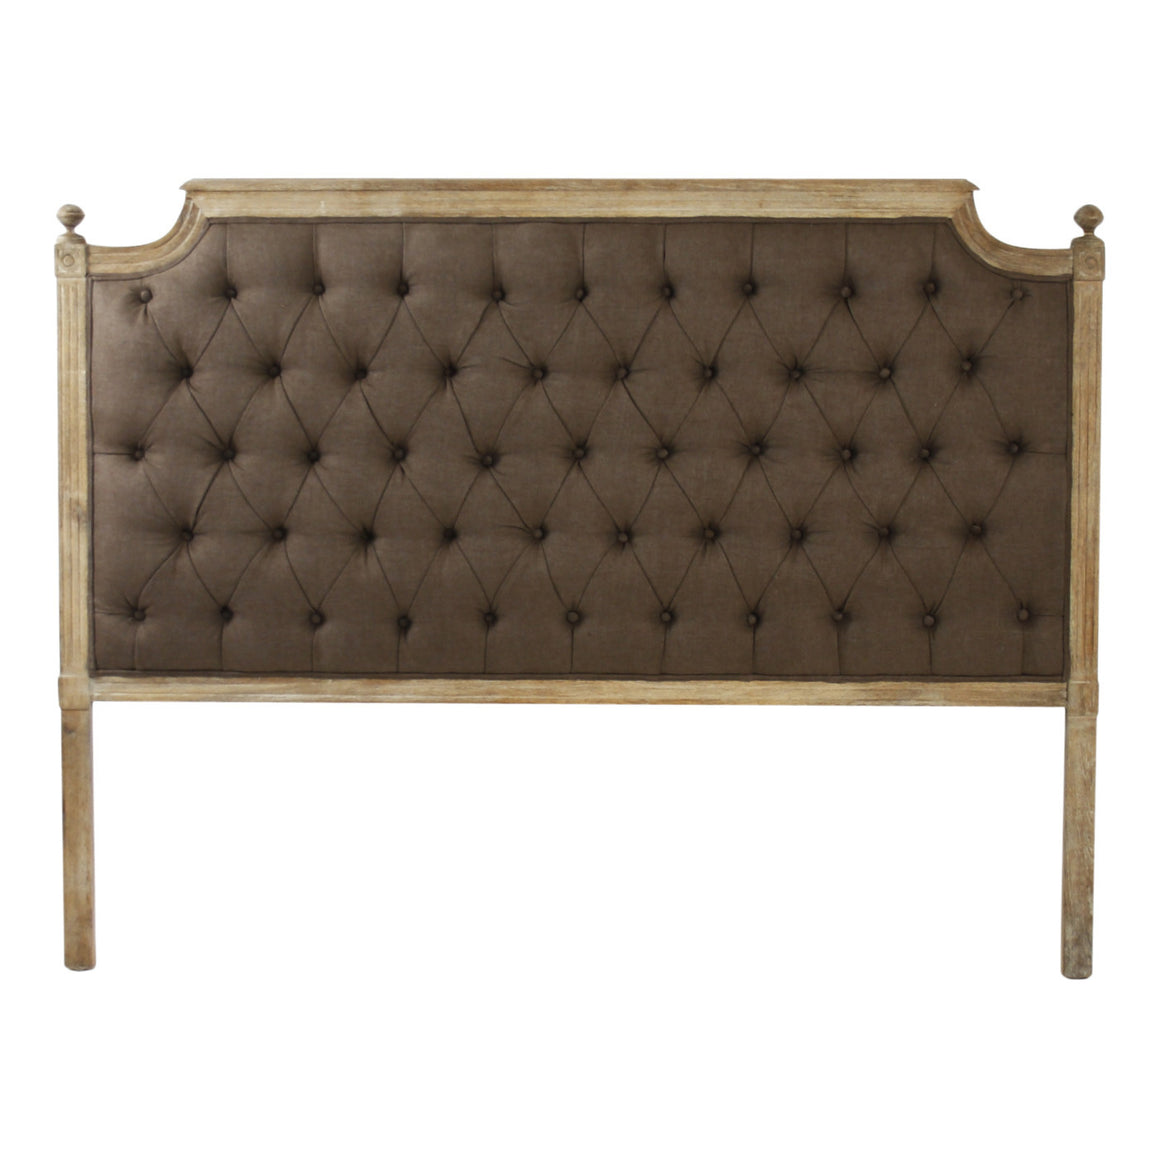 Headboard - Louis Tufted Headboard, Aubergine Linen